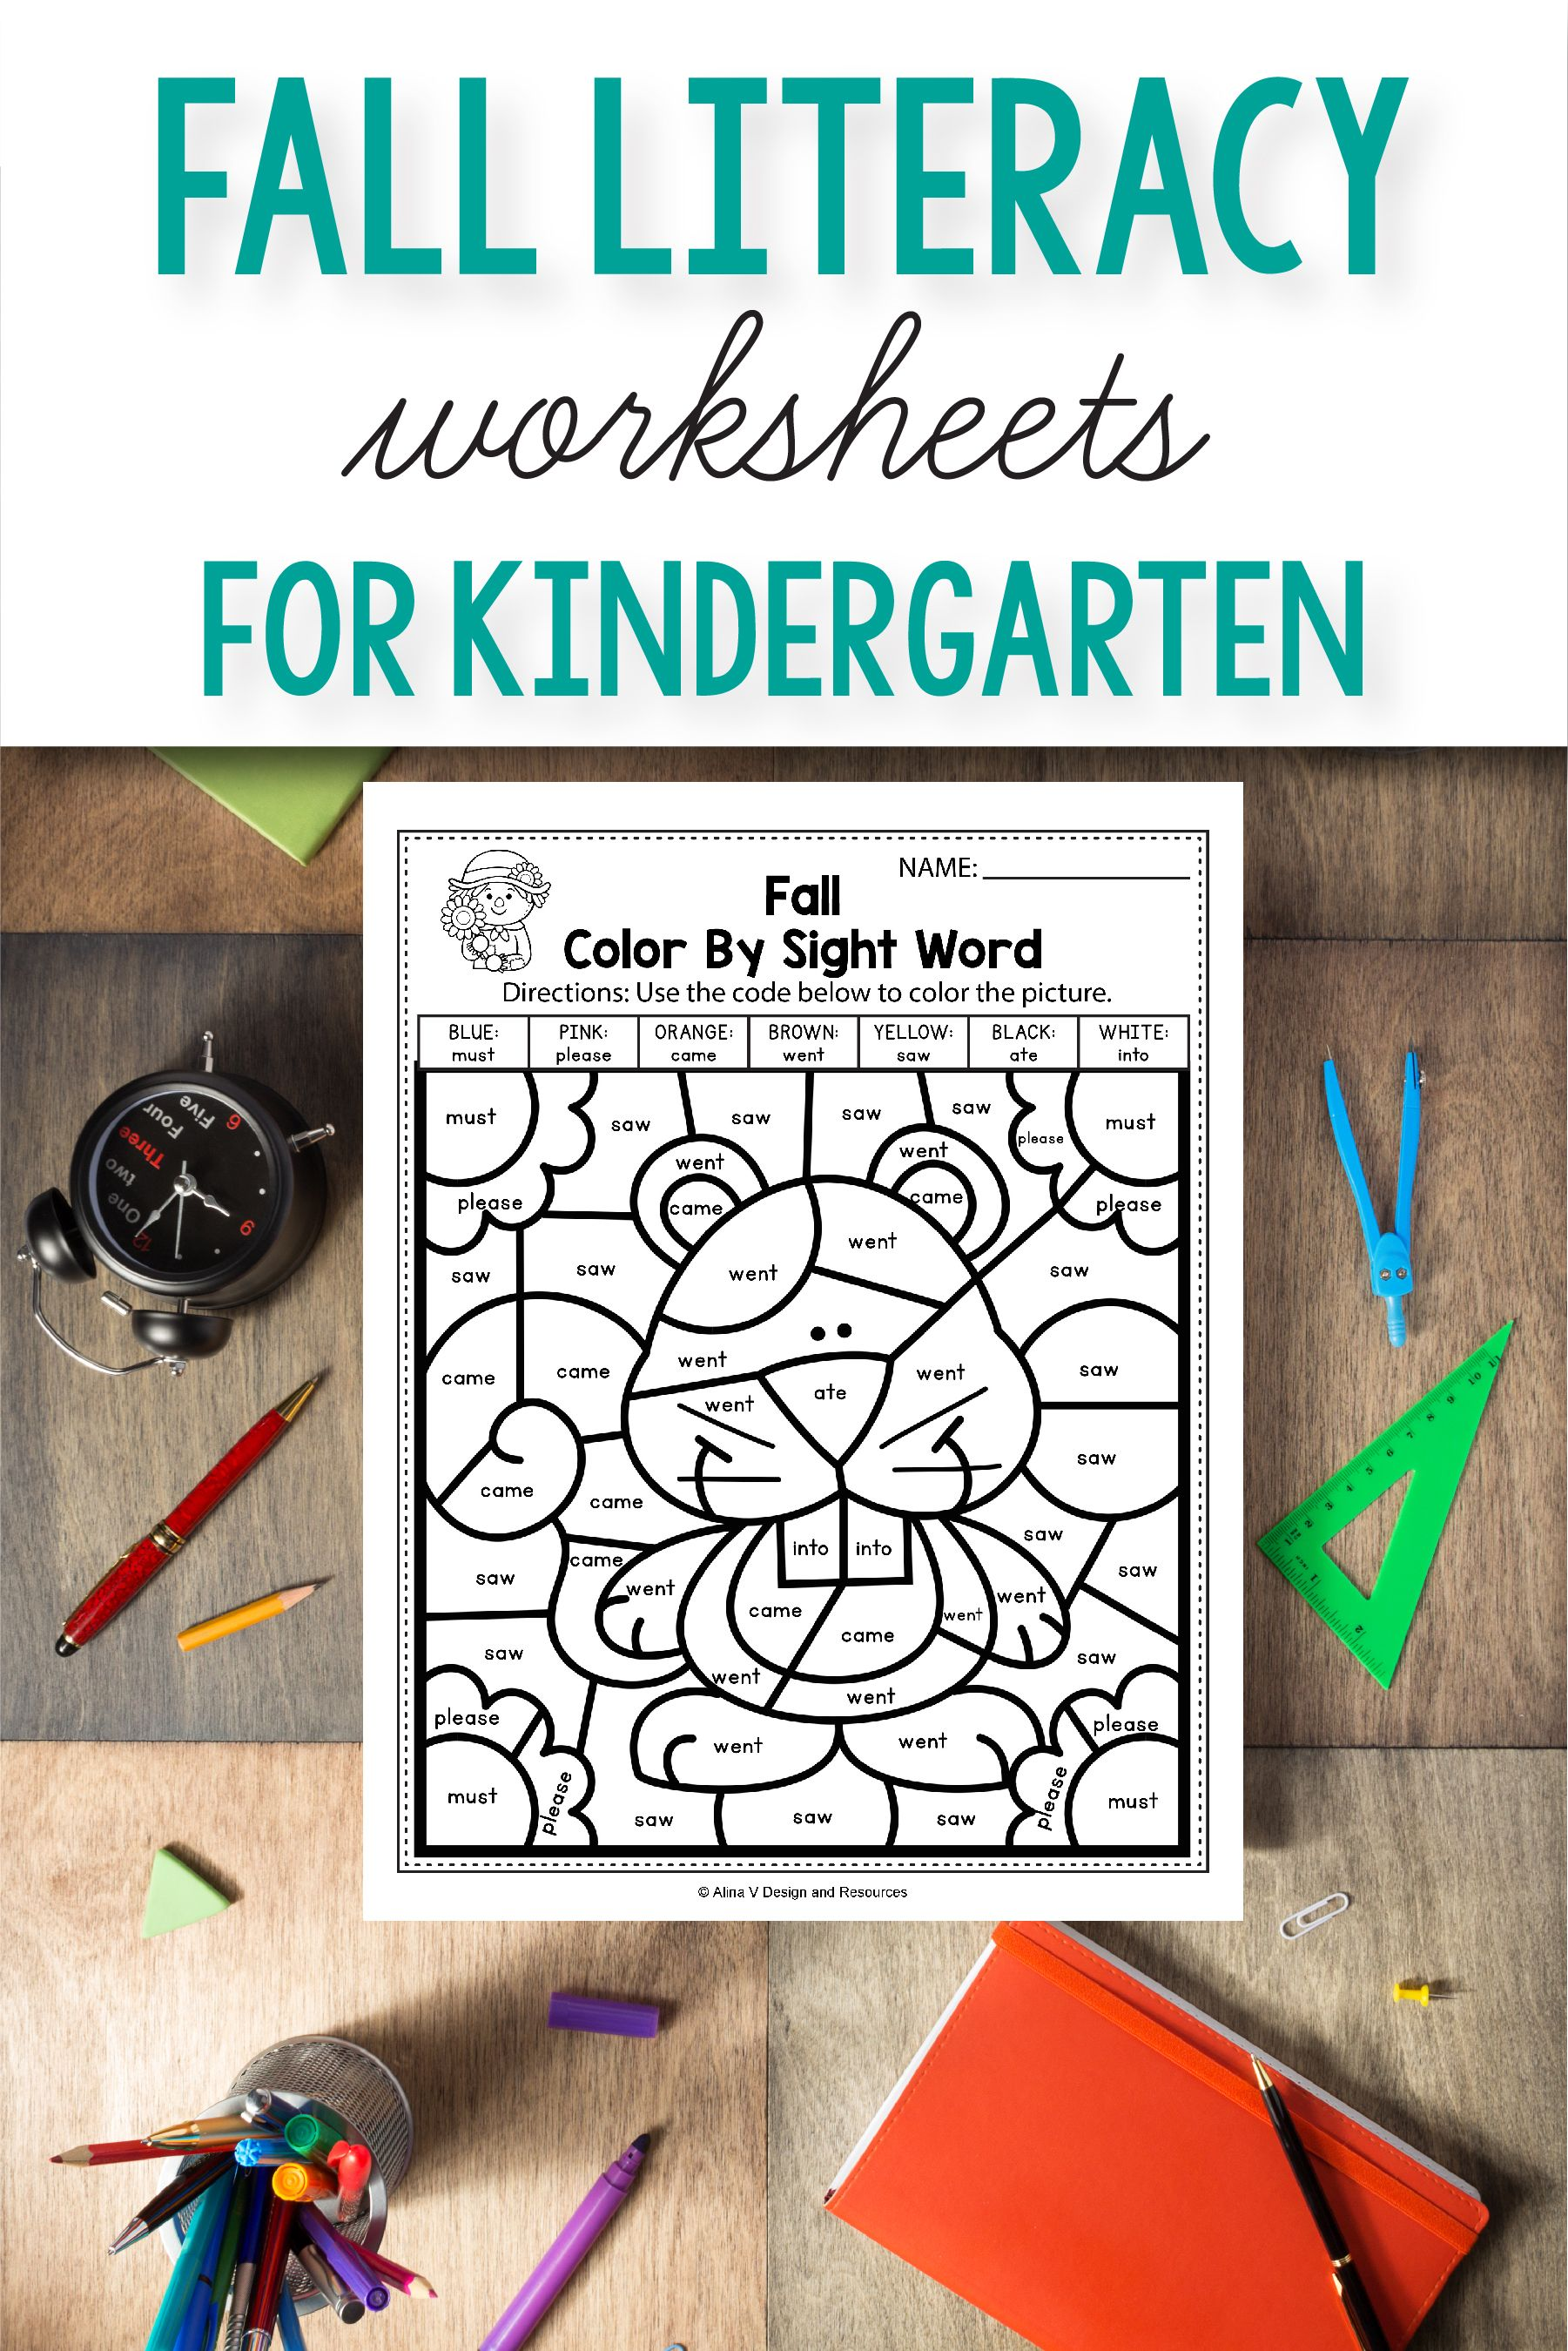 Fall Literacy Activities For Kindergarten 1st Grade And